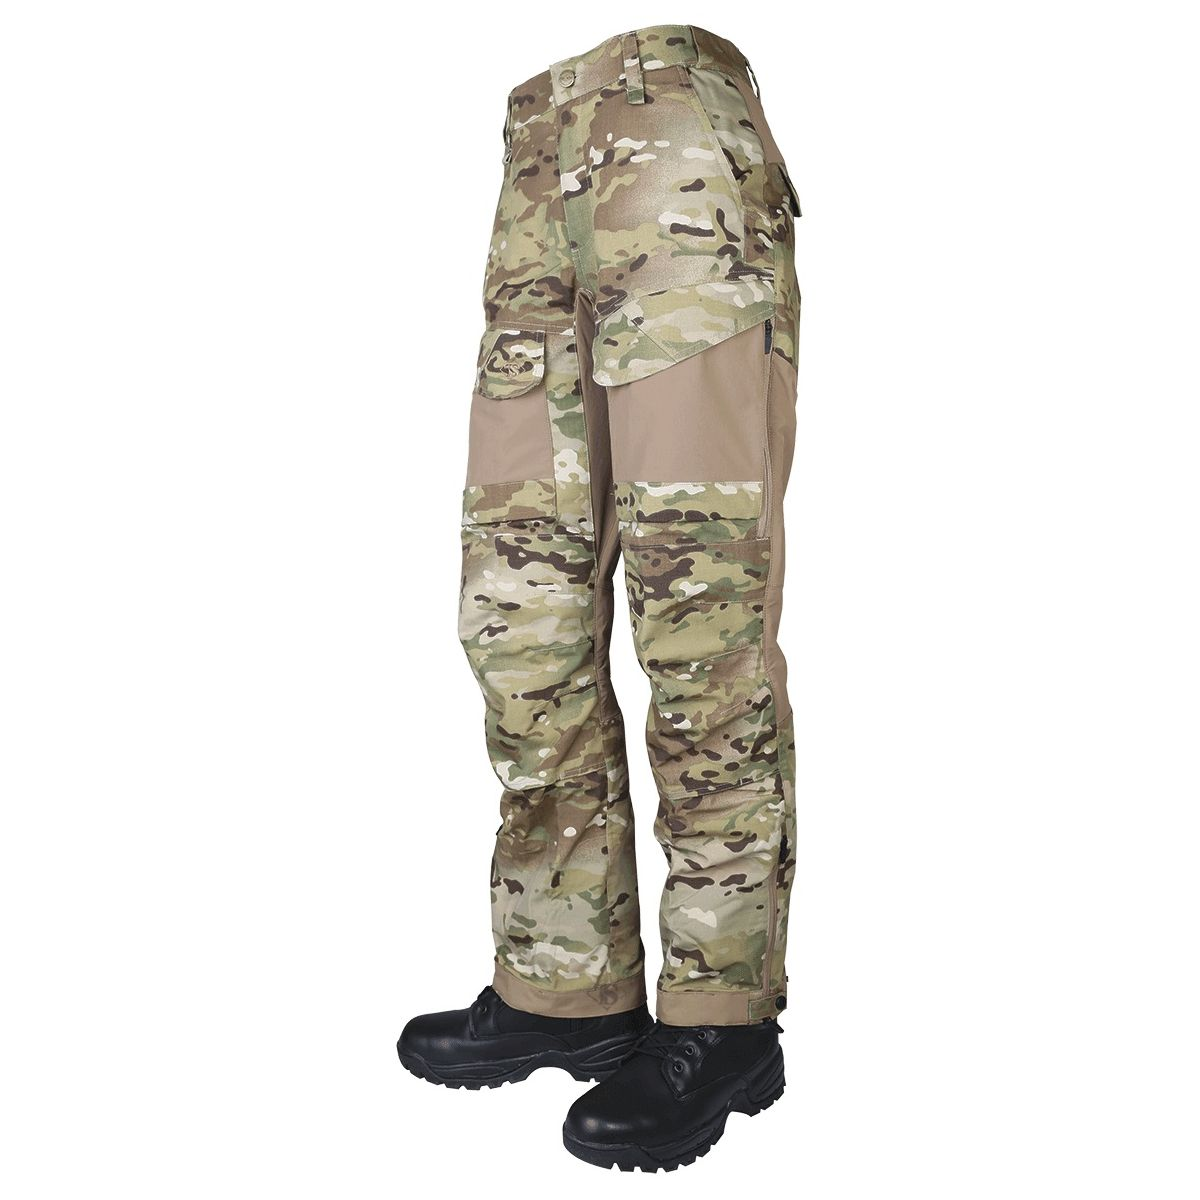 Nohavice 24-7 XPEDITION rip-stop MULTICAM®/COYOTE